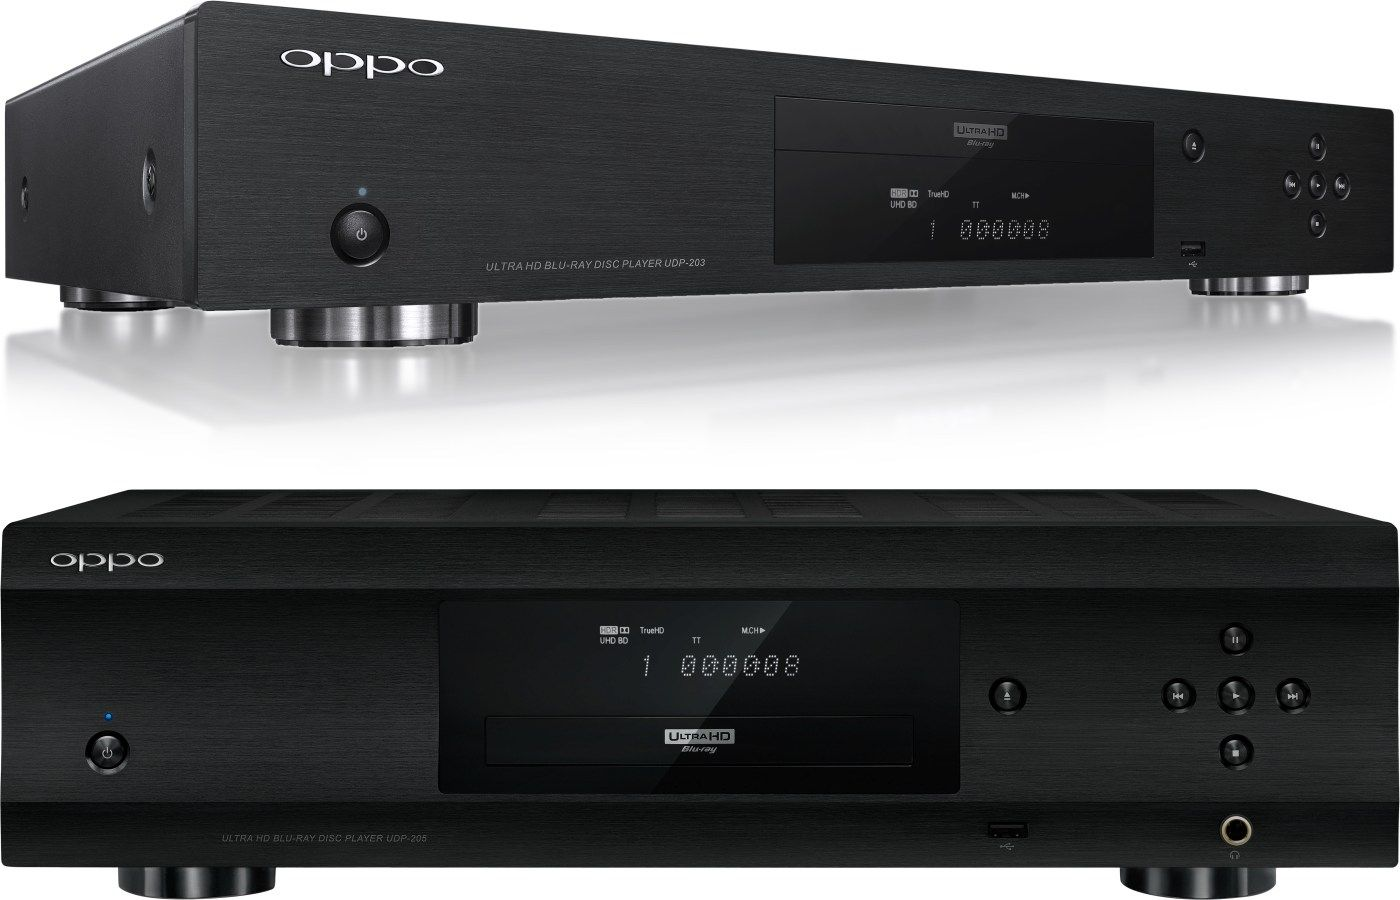 Oppo S 4k Blu Ray Players Are The First With Dolby Vision Hdr